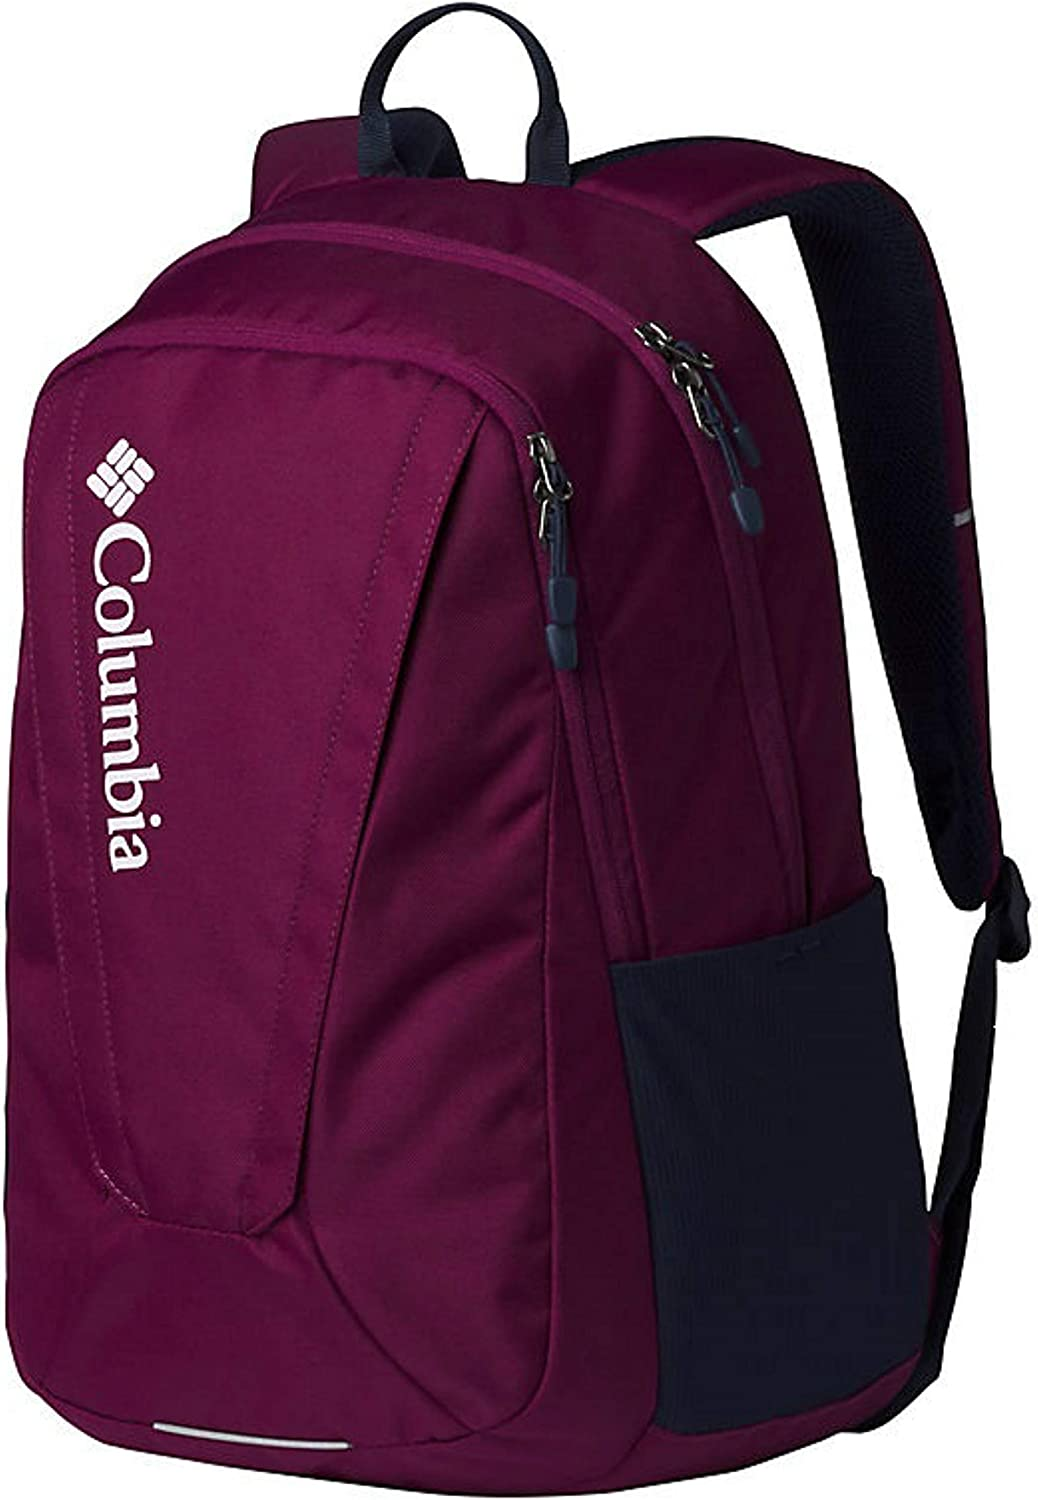 Columbia Unisex Tamolitch II Daypack Laptop School Student Backpack (Dark Raspberry/Navy)